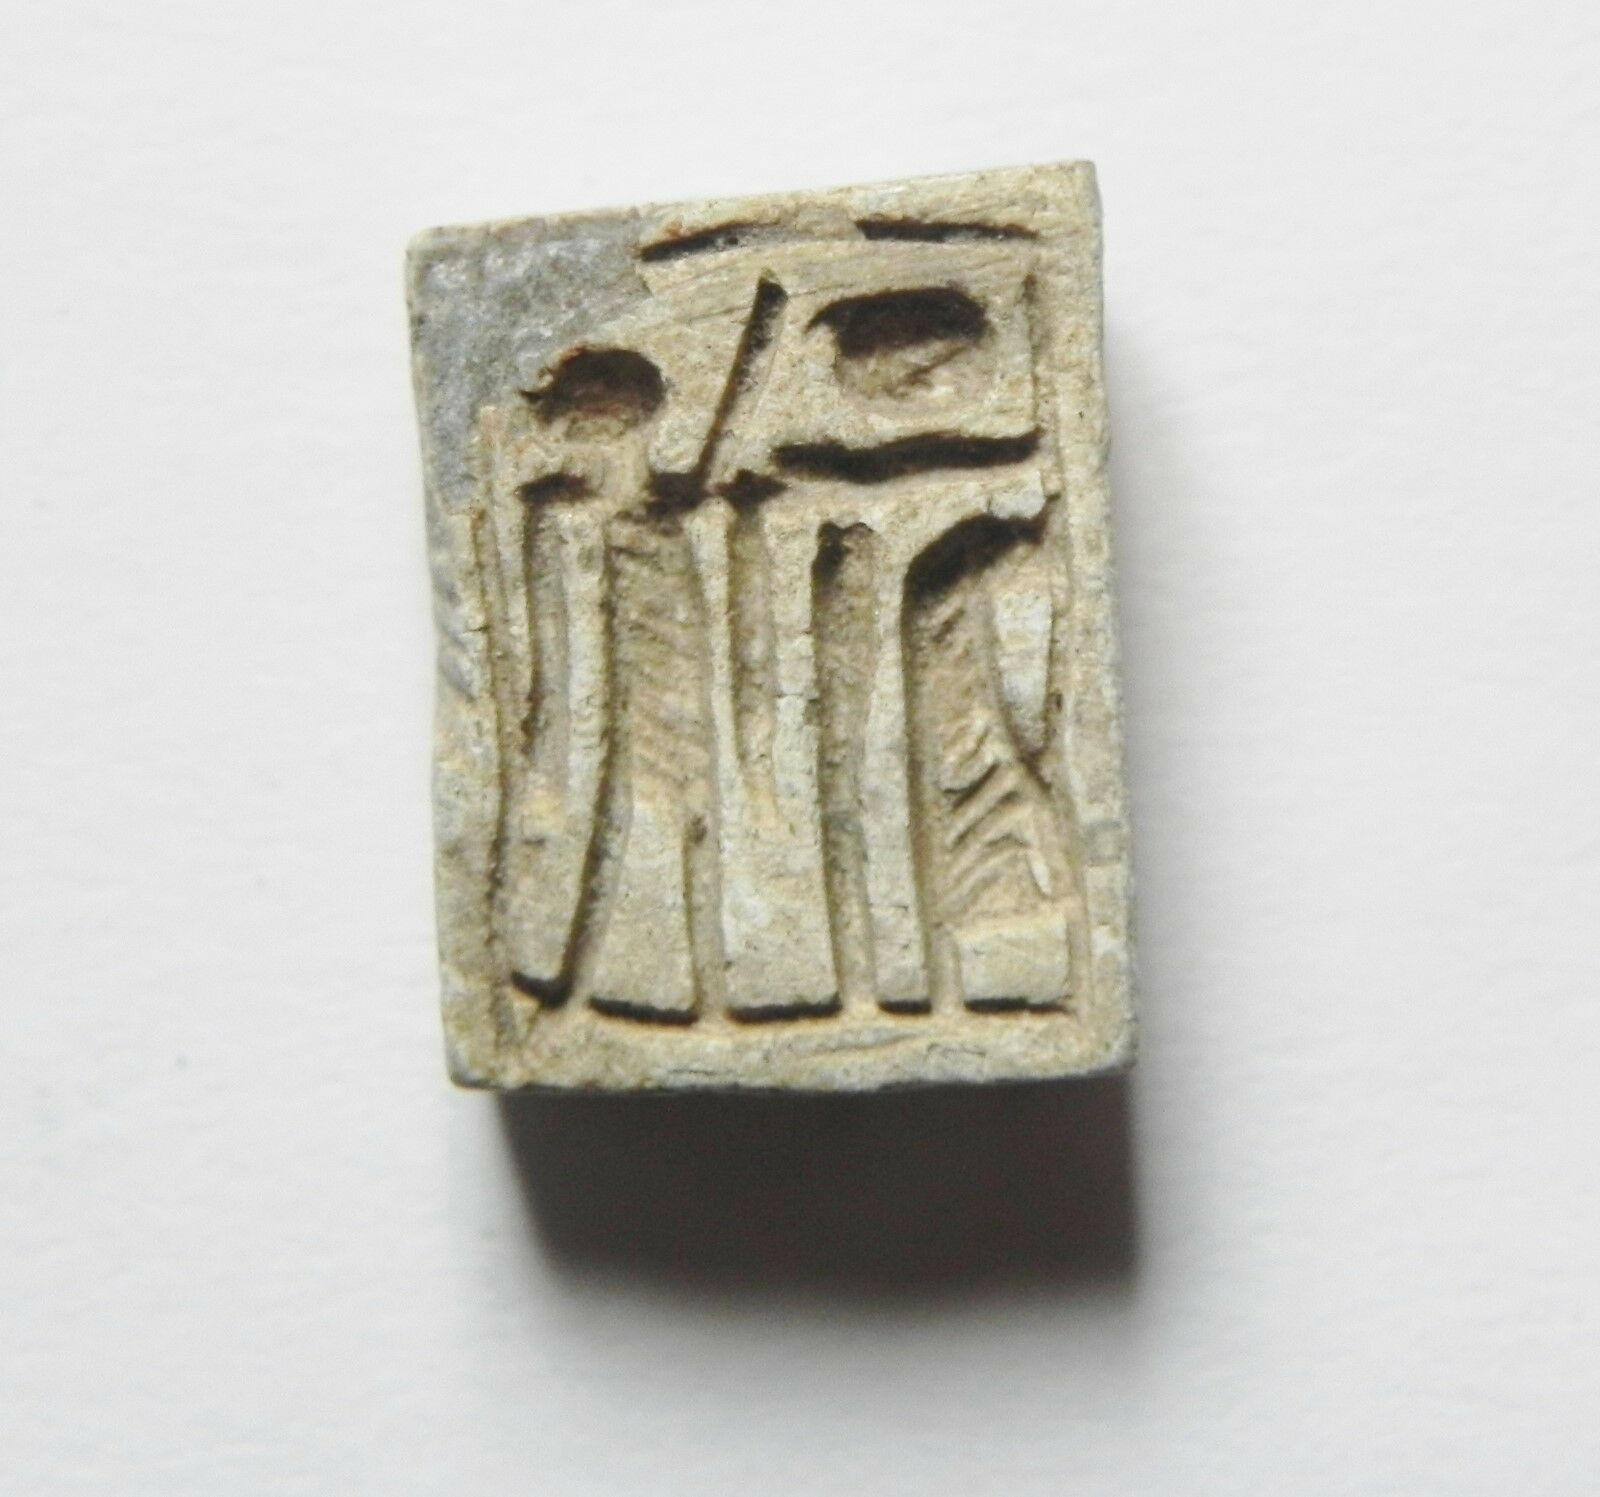 ZURQIEH -aa413- ANCIENT EGYPT, 19TH DYNASTY. NEW KINGDOM. STEATITE SEAL